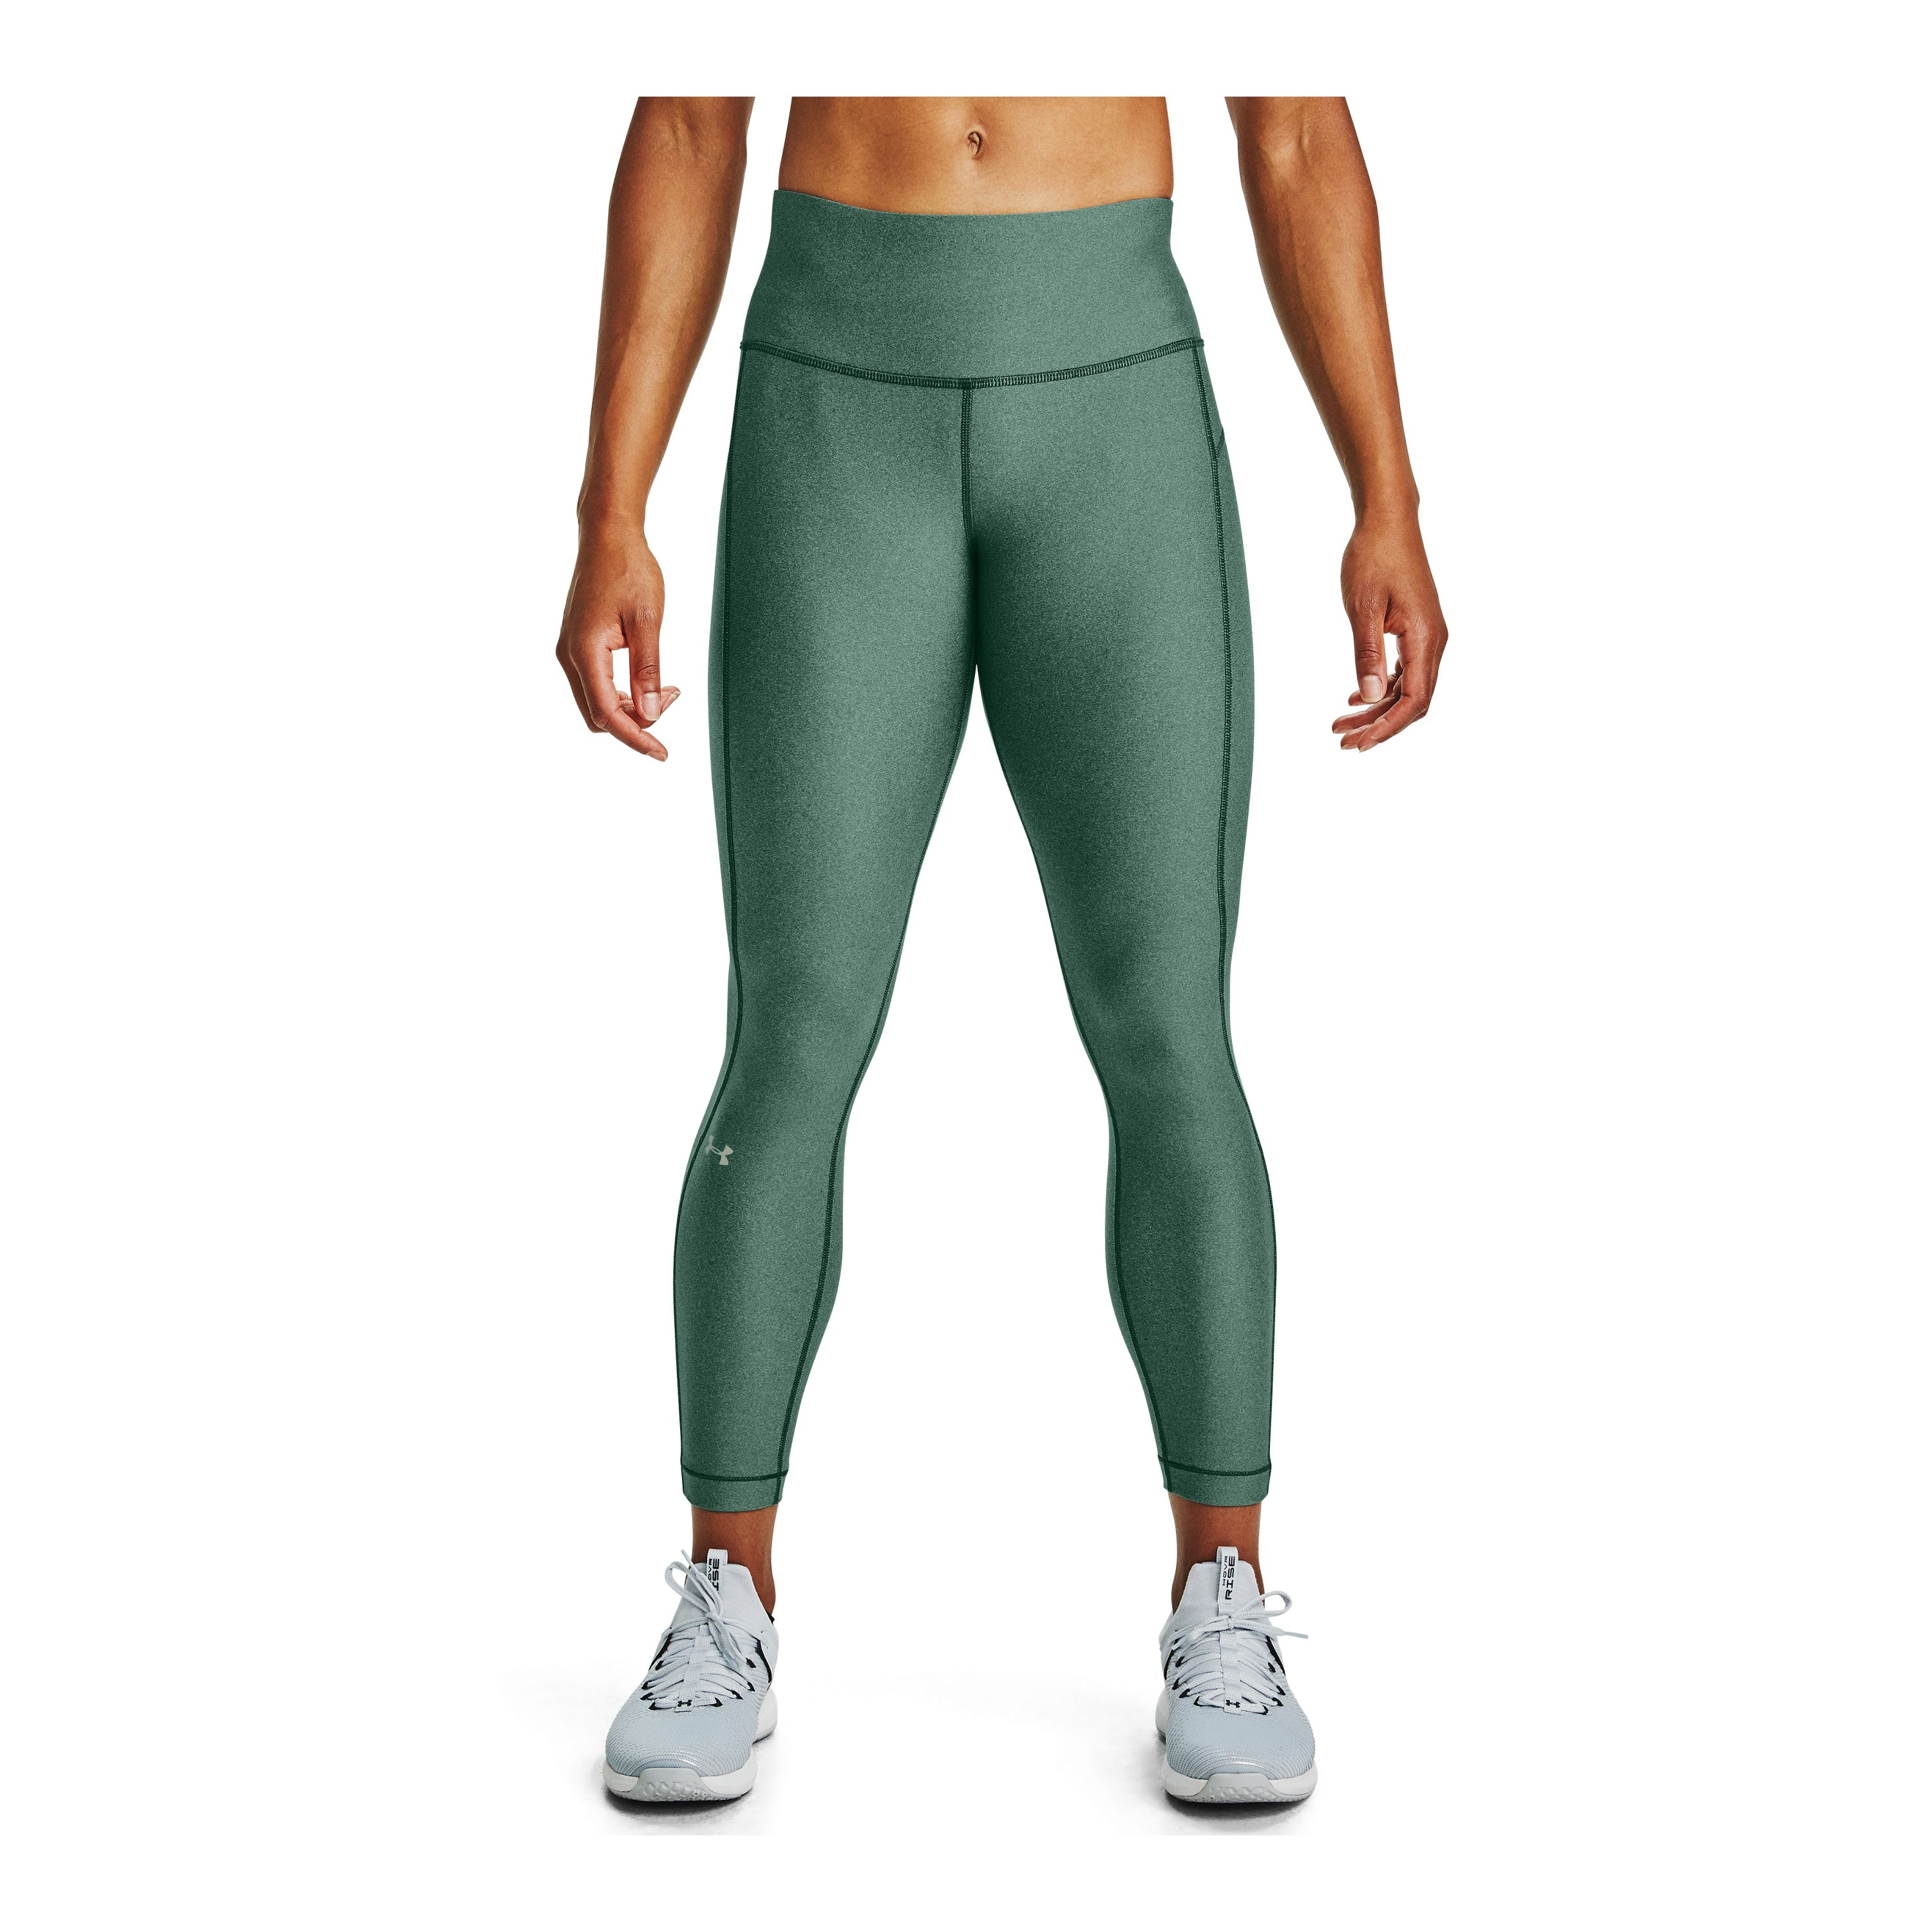 Calza Mujer Under Armour Hg Hi-Rise Ankl Crop Verde